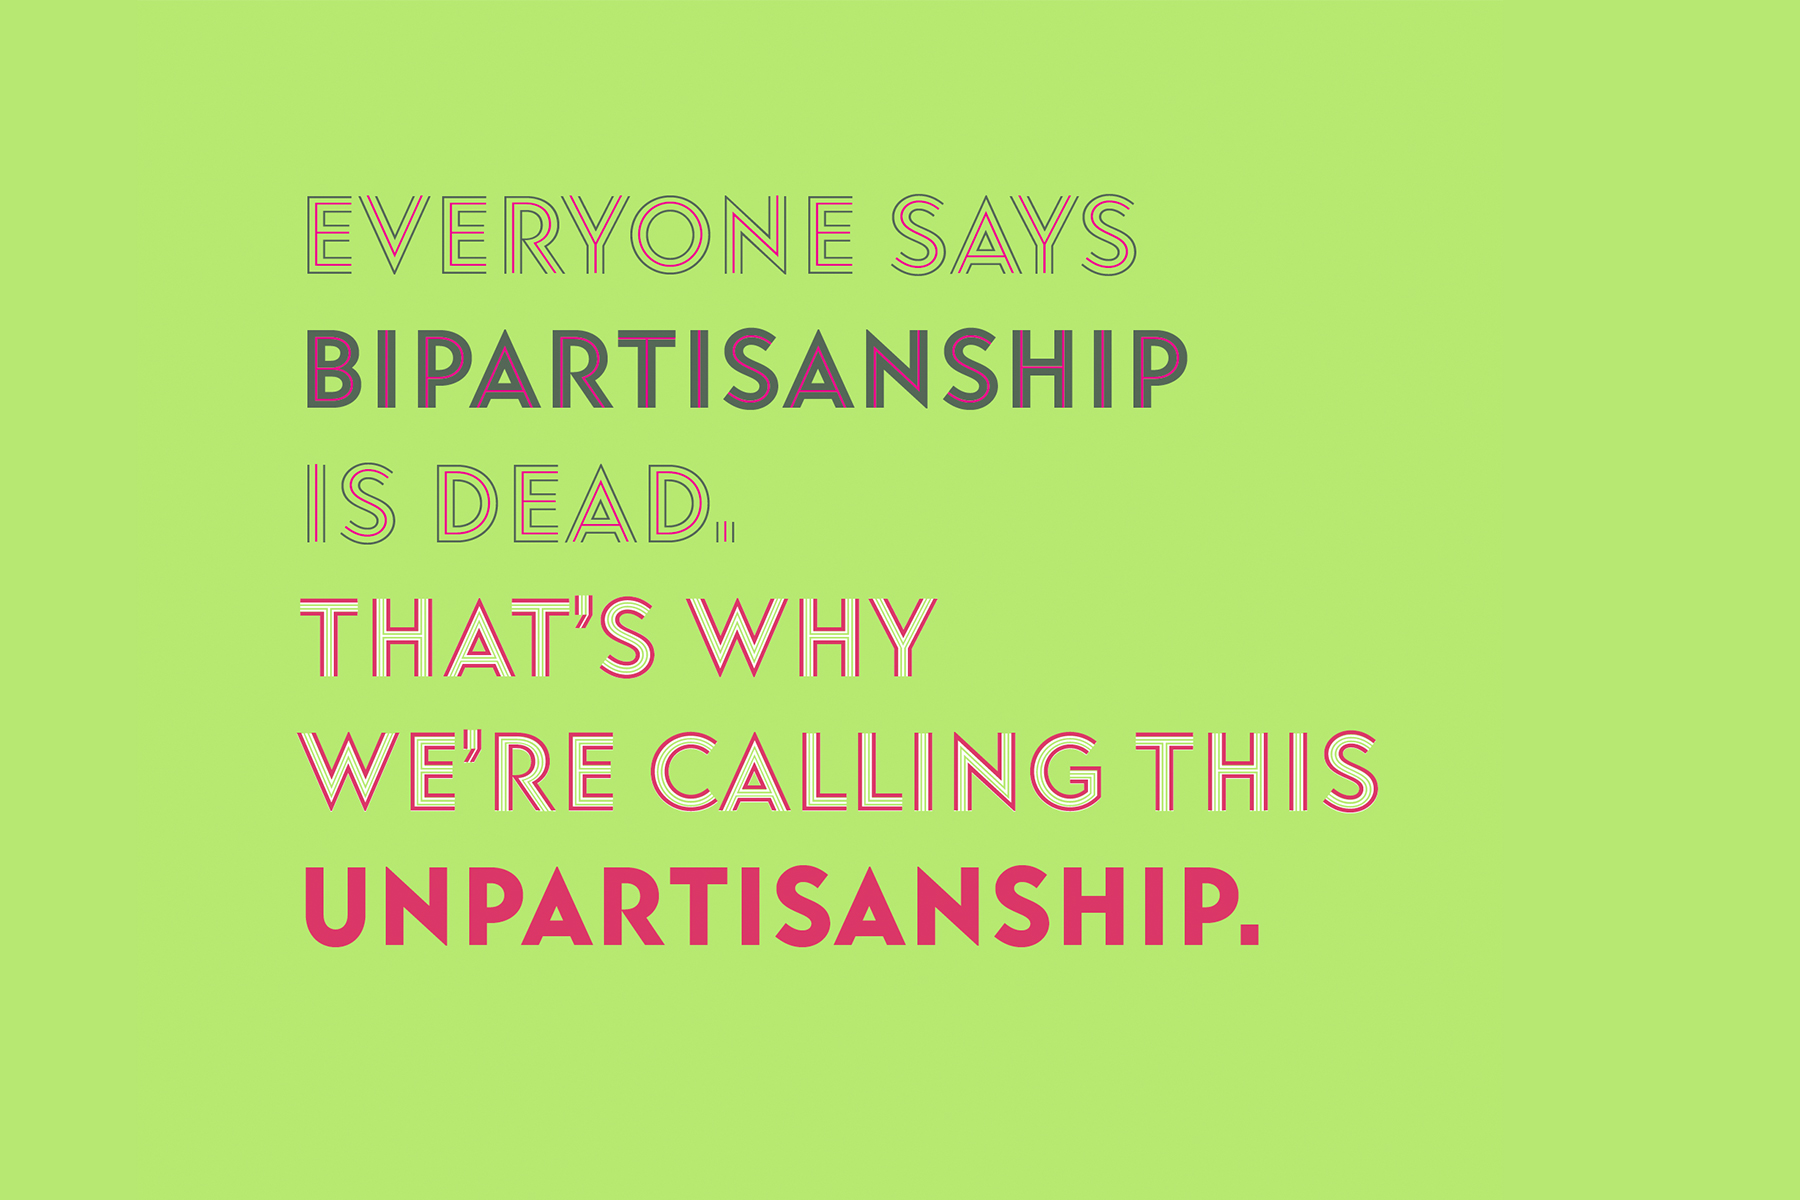 Everyone says bipartisanship is dead. That's why we're calling this unpartisanship.